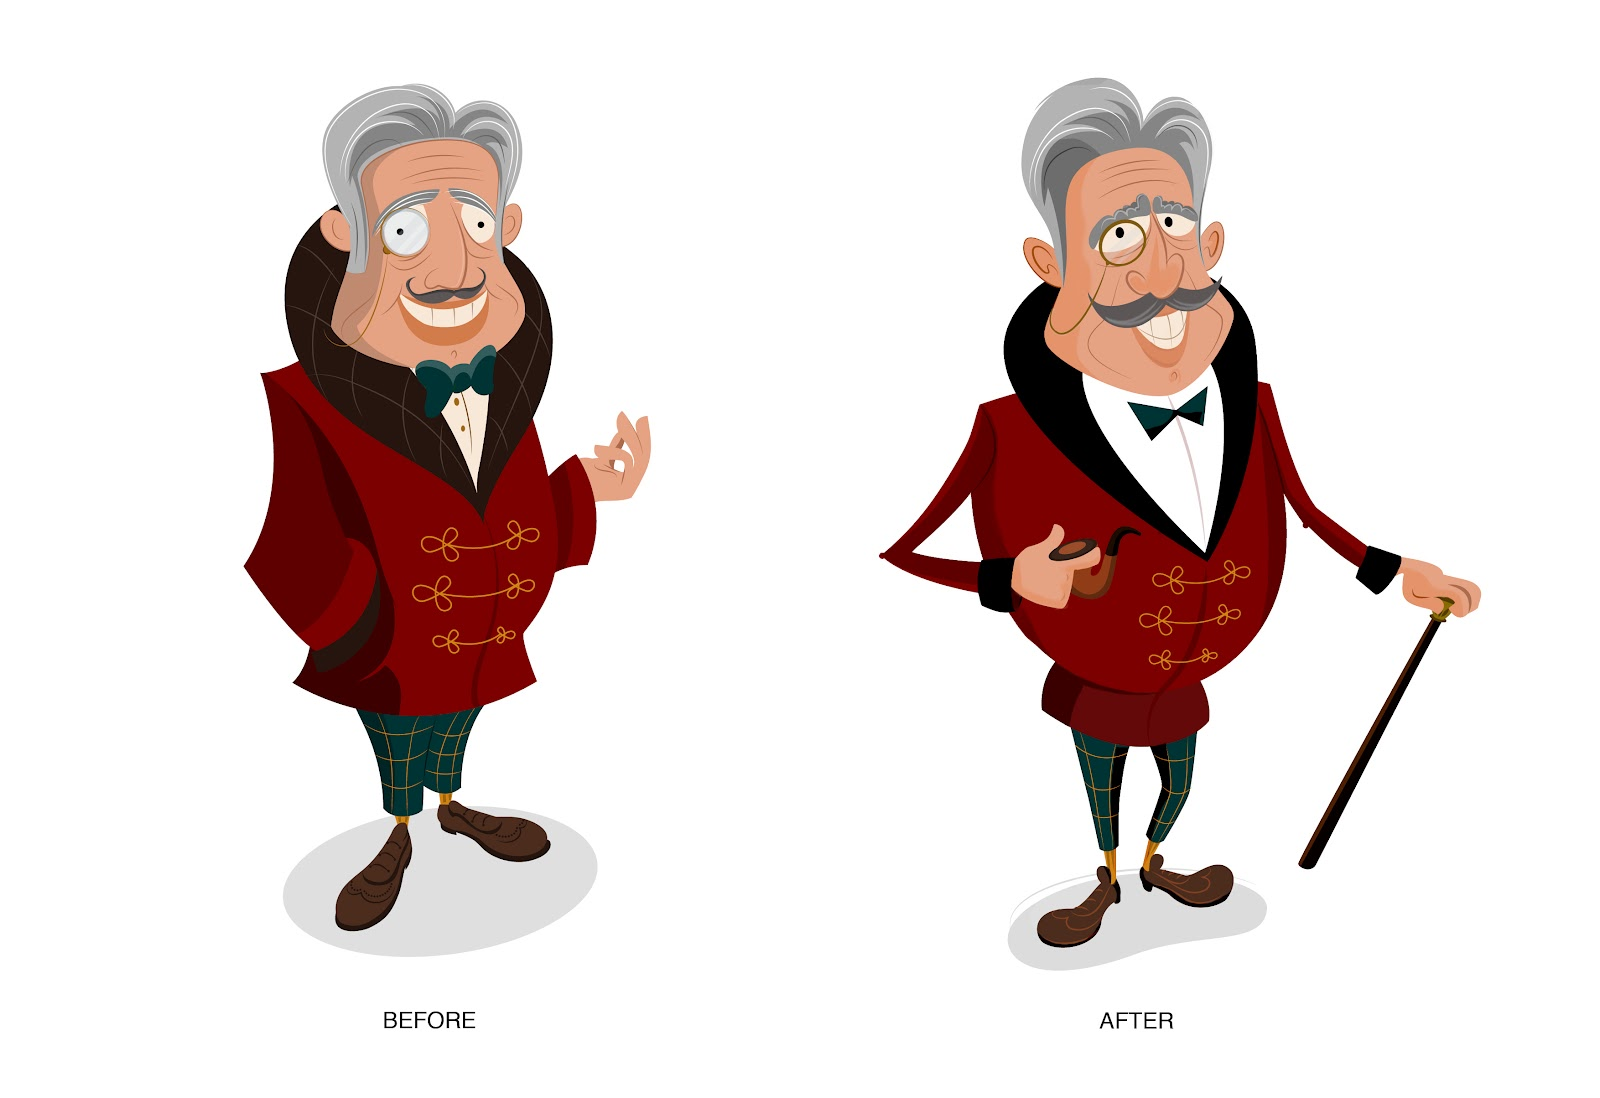 Character Design University Courses : Draw lola schoolism character design course